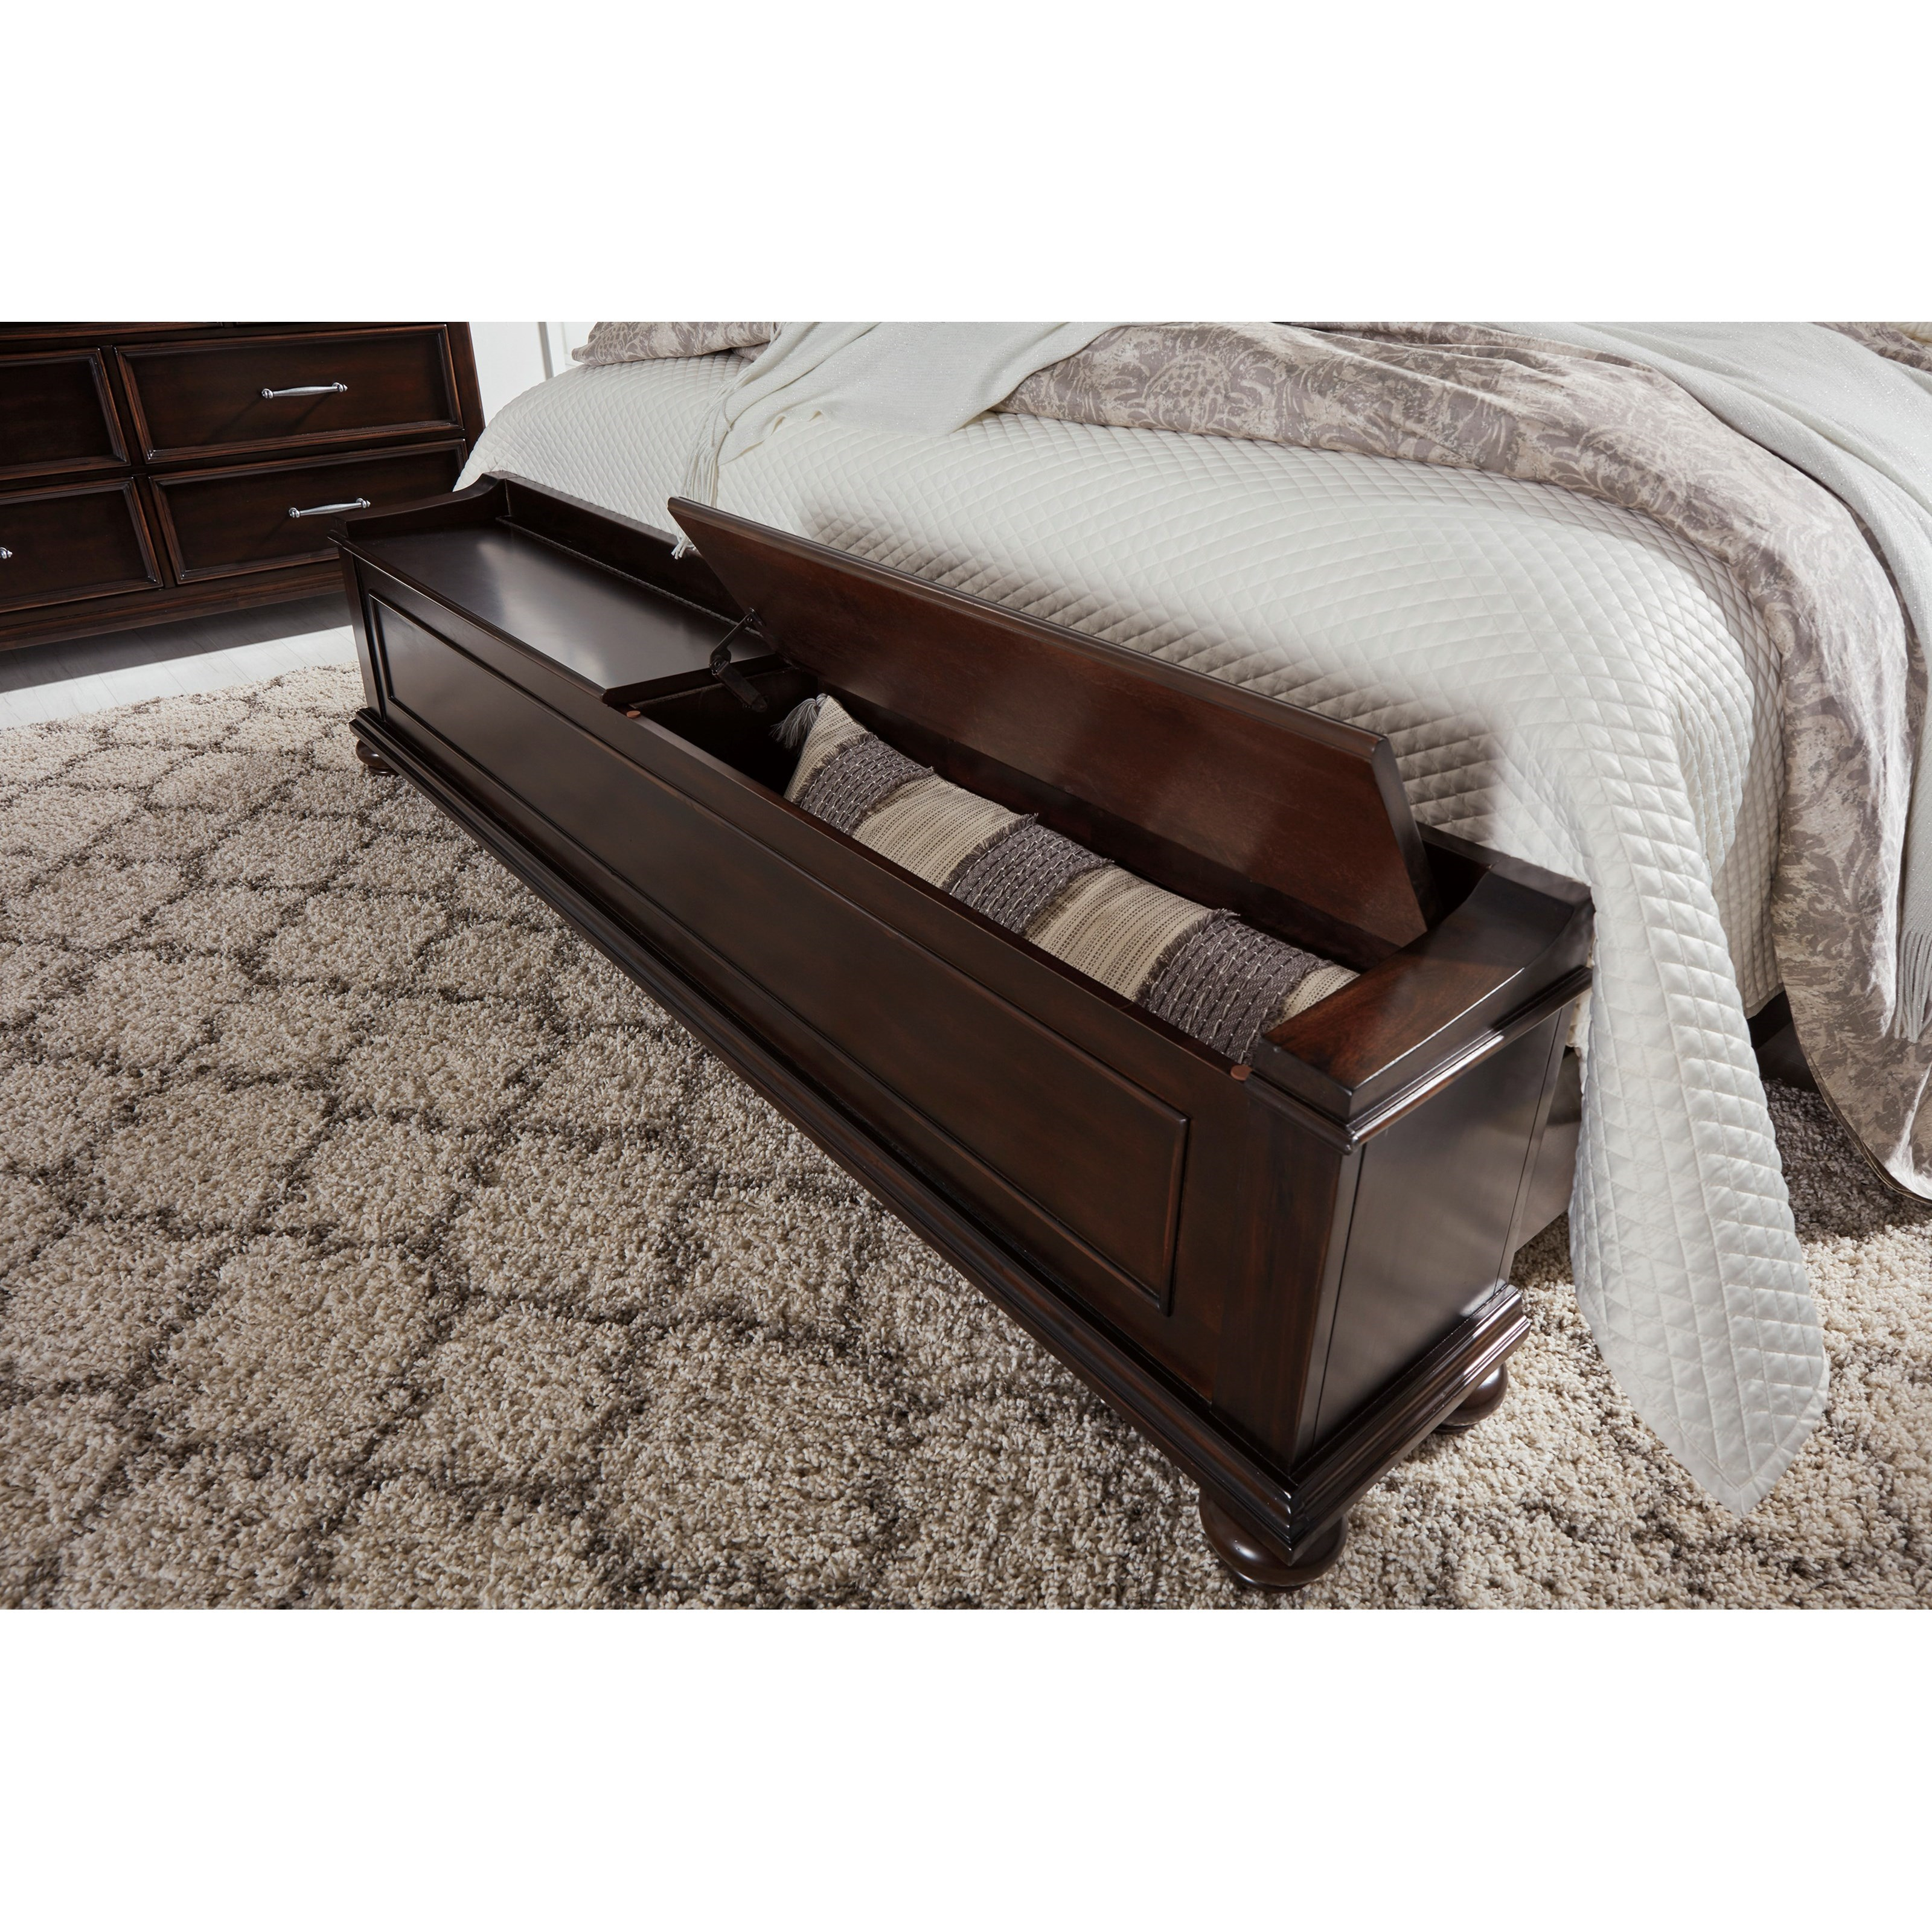 Bench By Bed: Traditional Queen Panel Bed With Storage Bench By